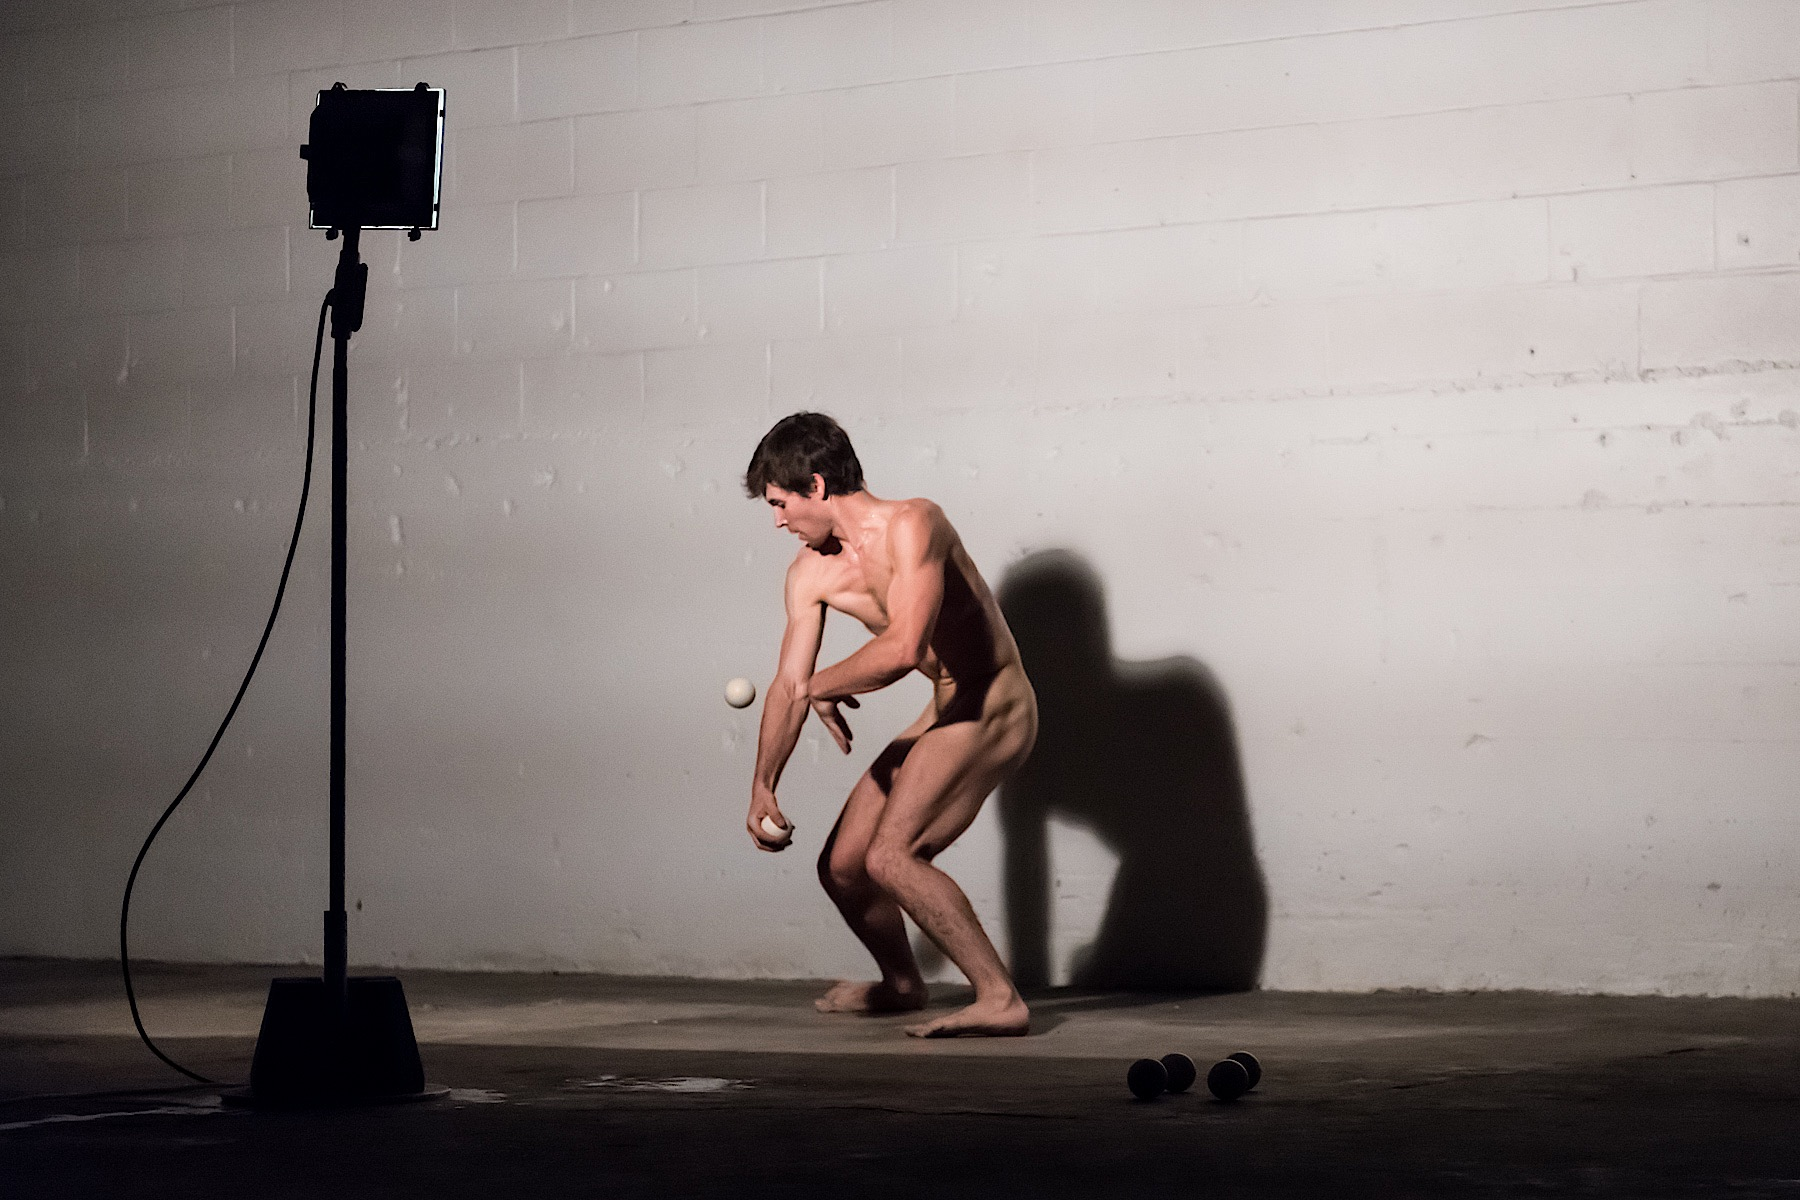 Naked person juggling with two balls